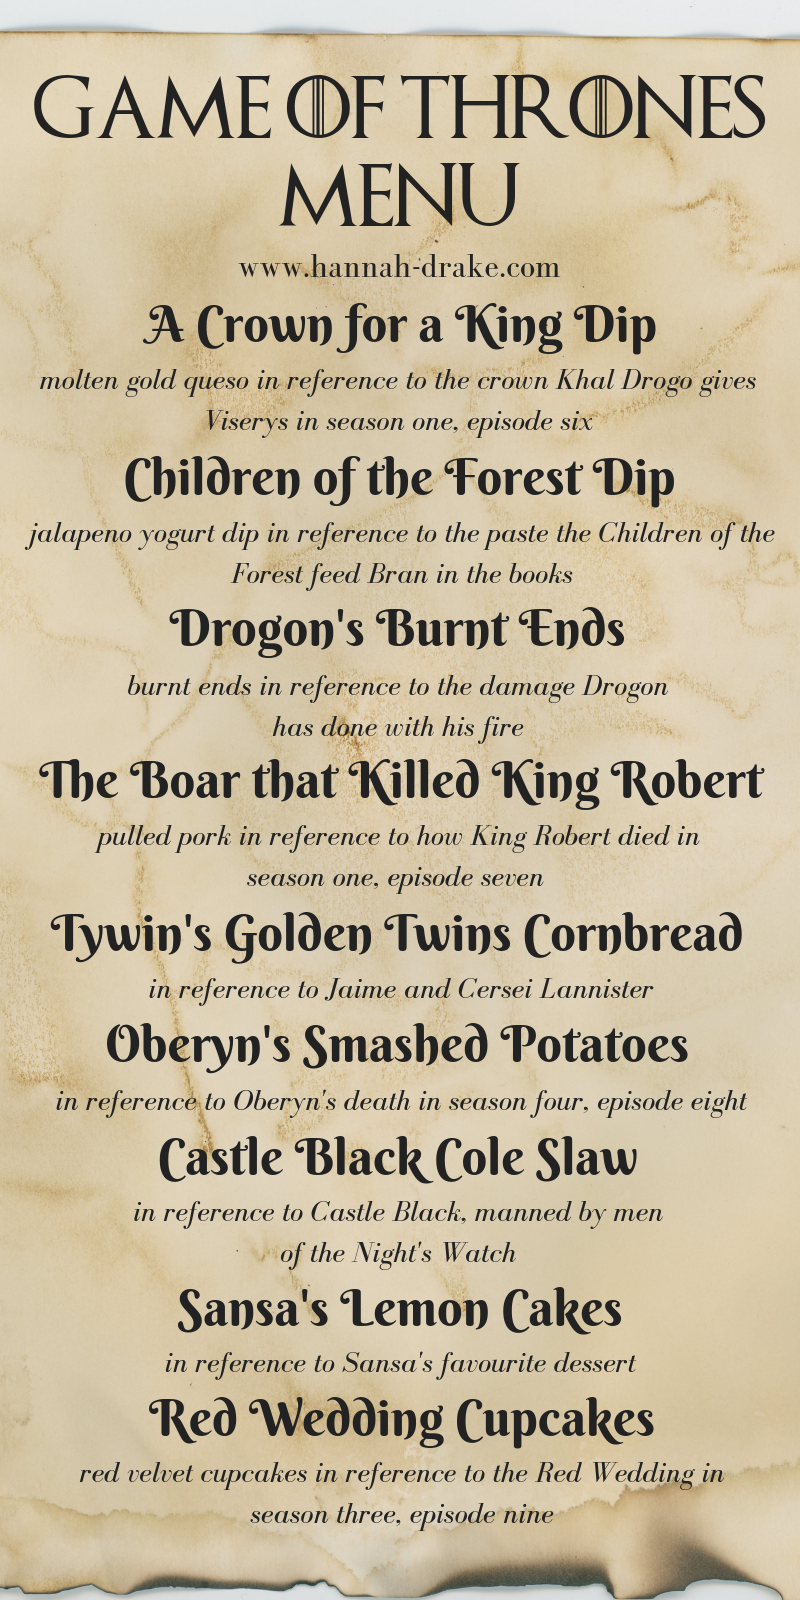 Game of Thrones Party Menu